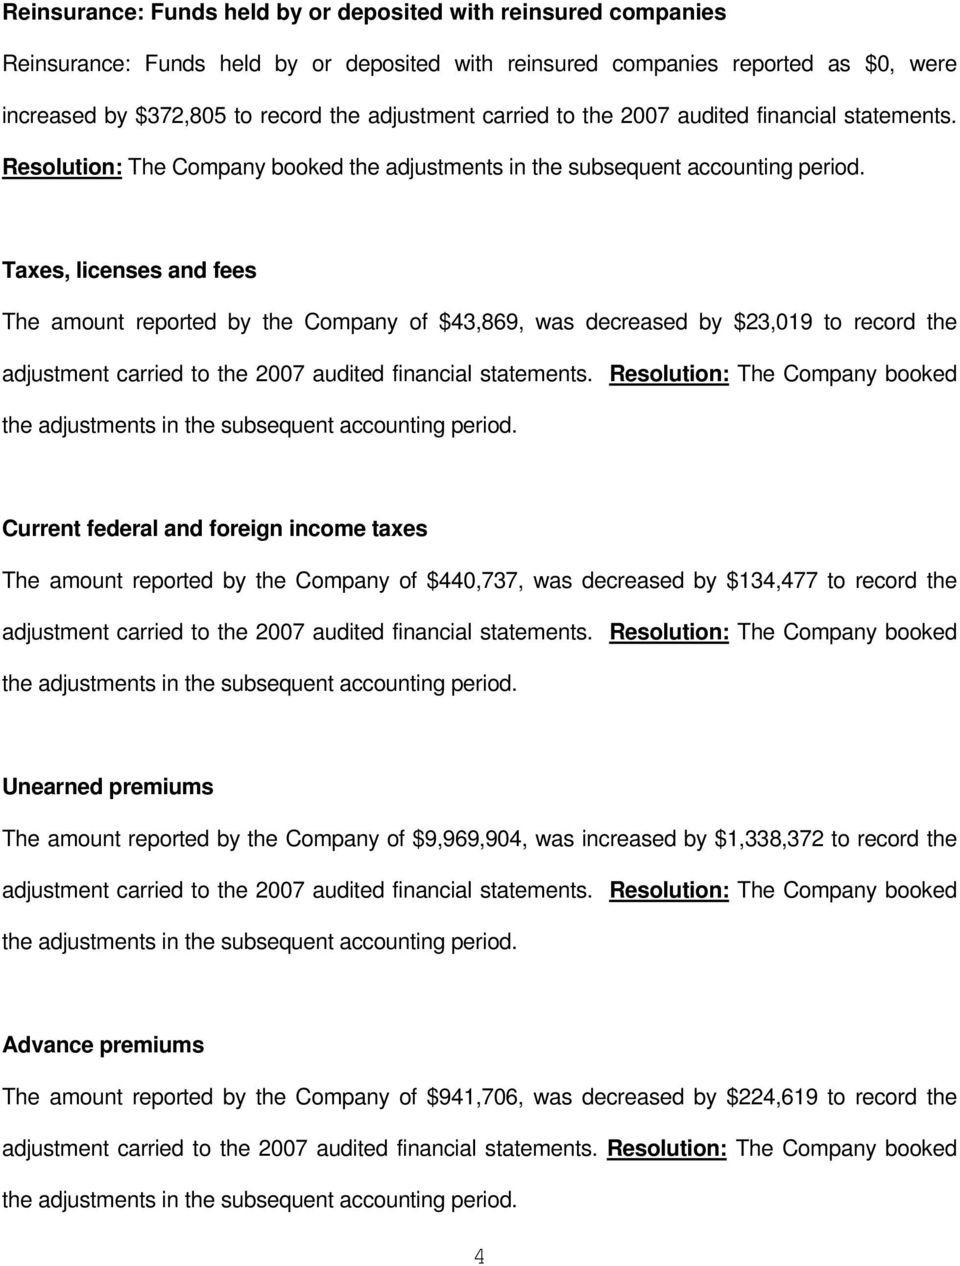 Taxes, licenses and fees The amount reported by the Company of $43,869, was decreased by $23,019 to record the adjustment  Current federal and foreign income taxes The amount reported by the Company